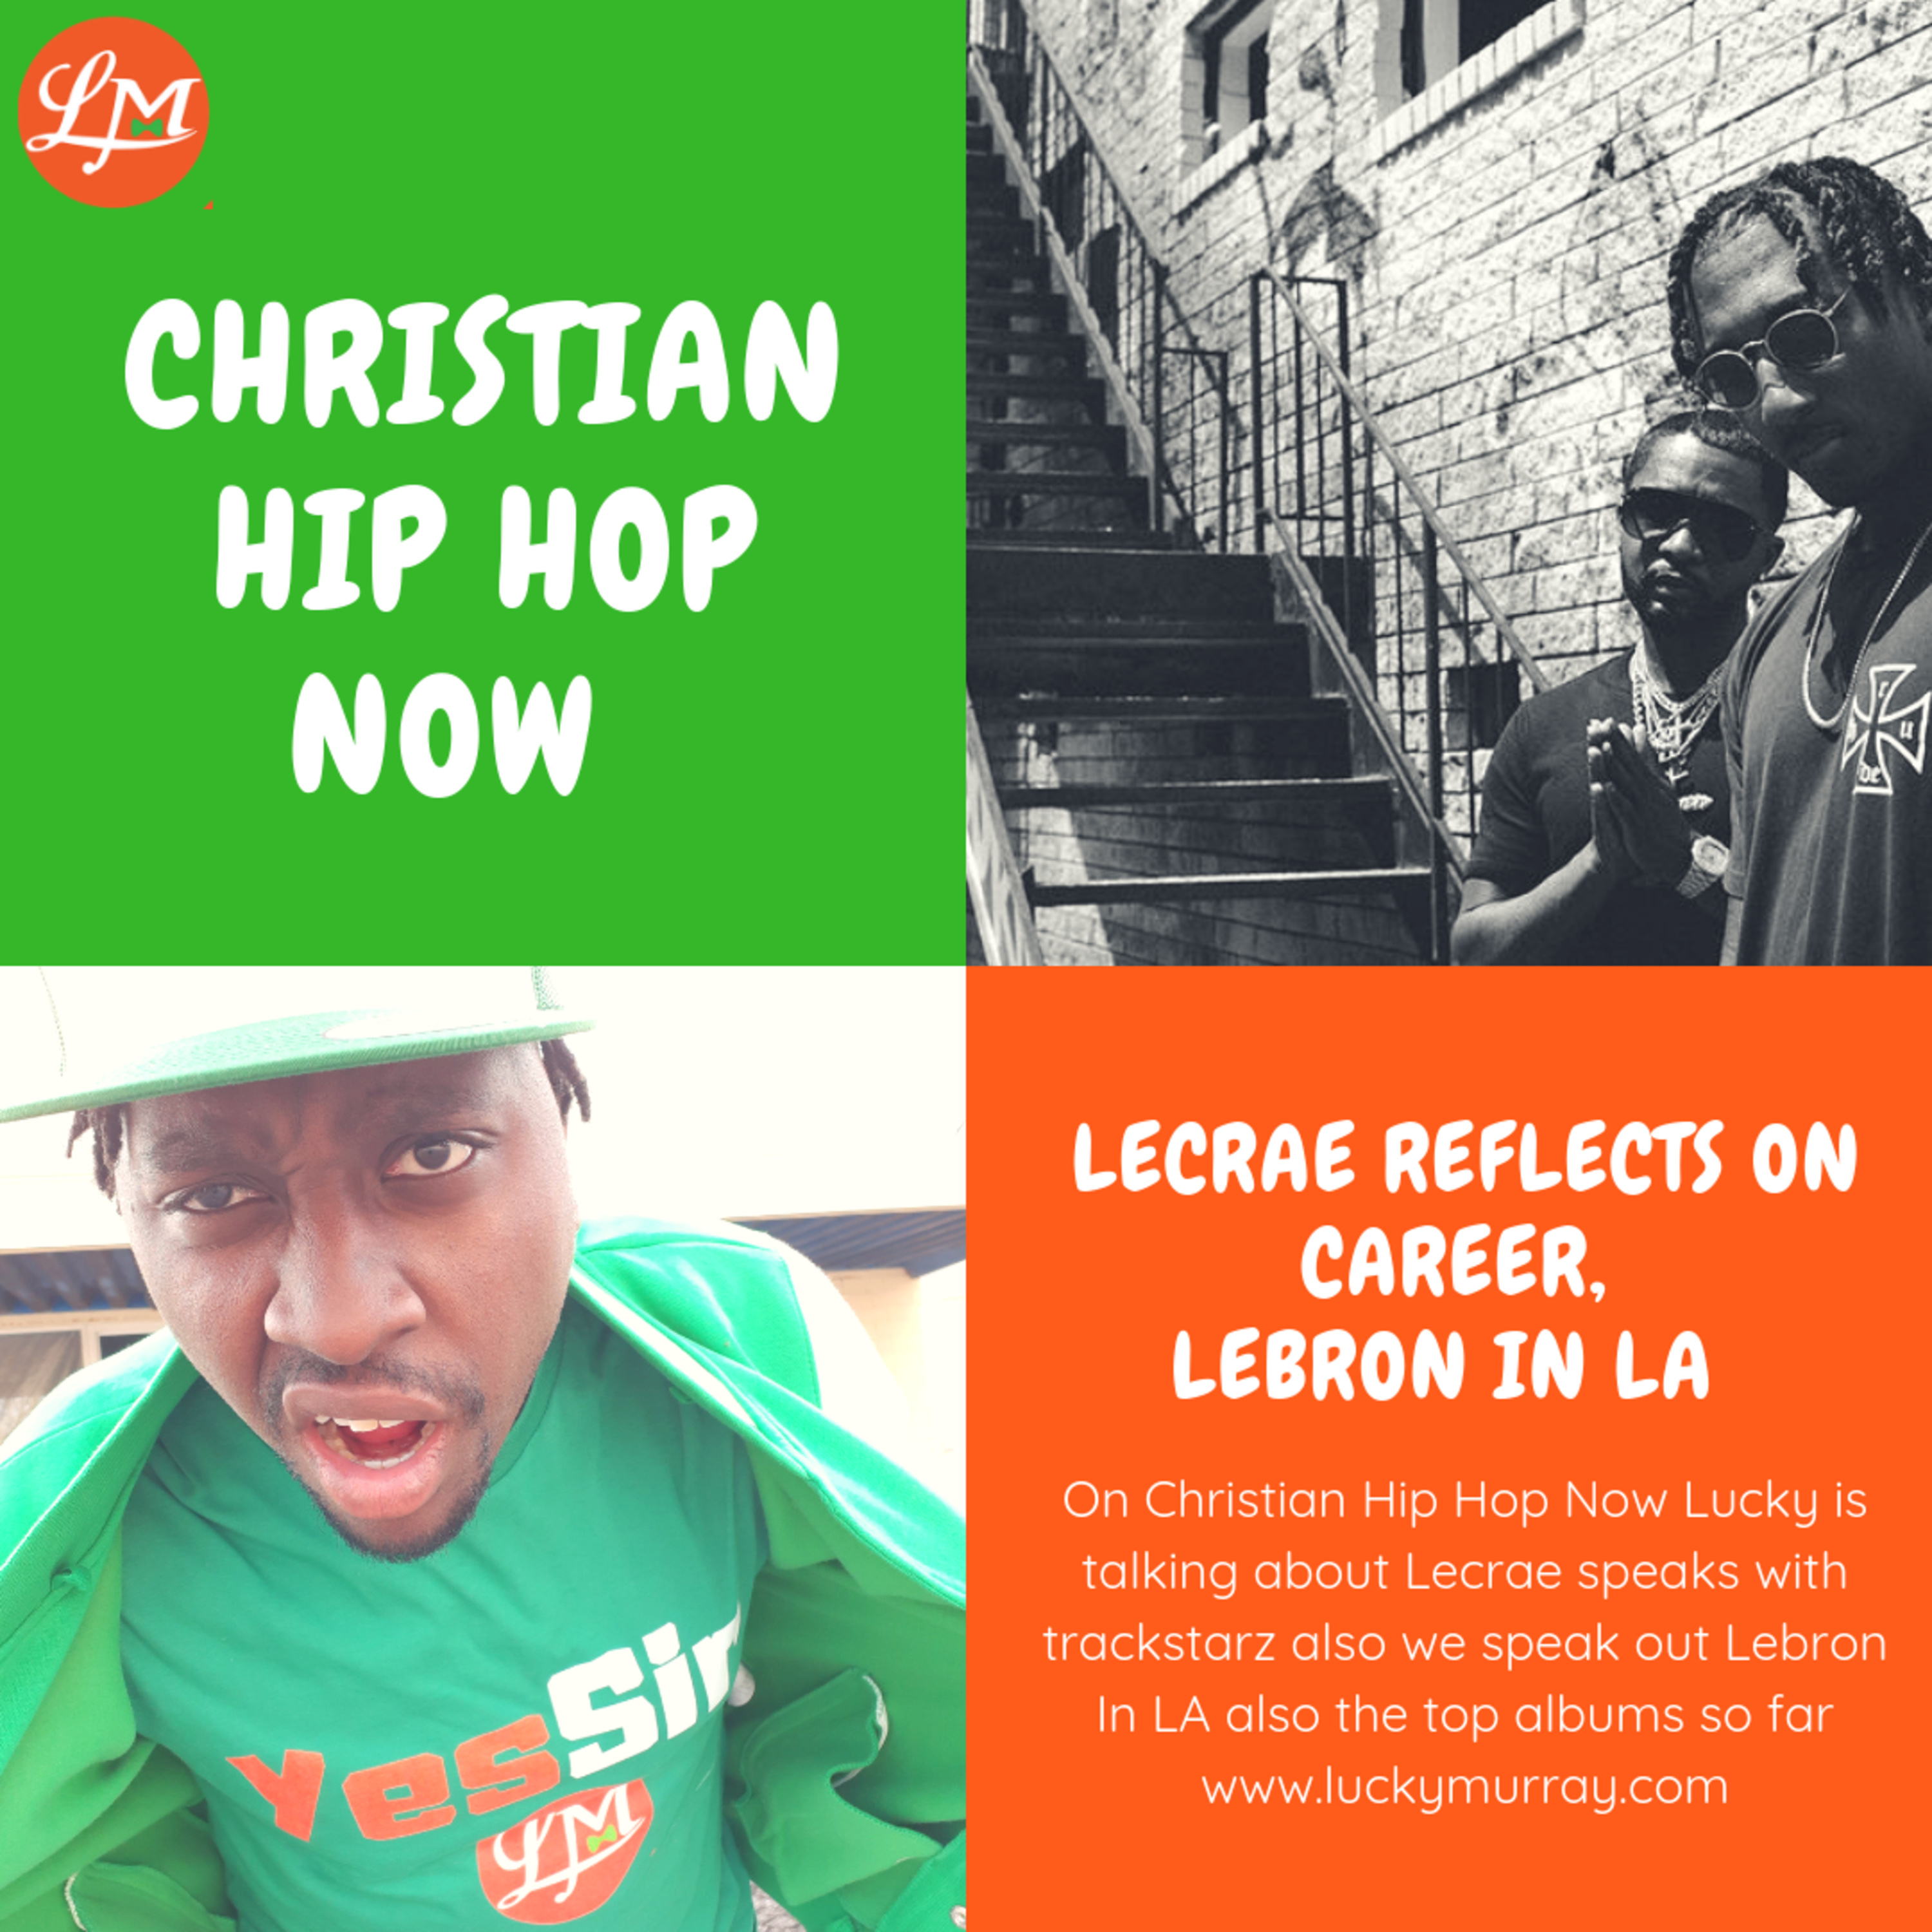 Lecrae Reflects On Career, Lebron James In LA, Favorite CHH Albums